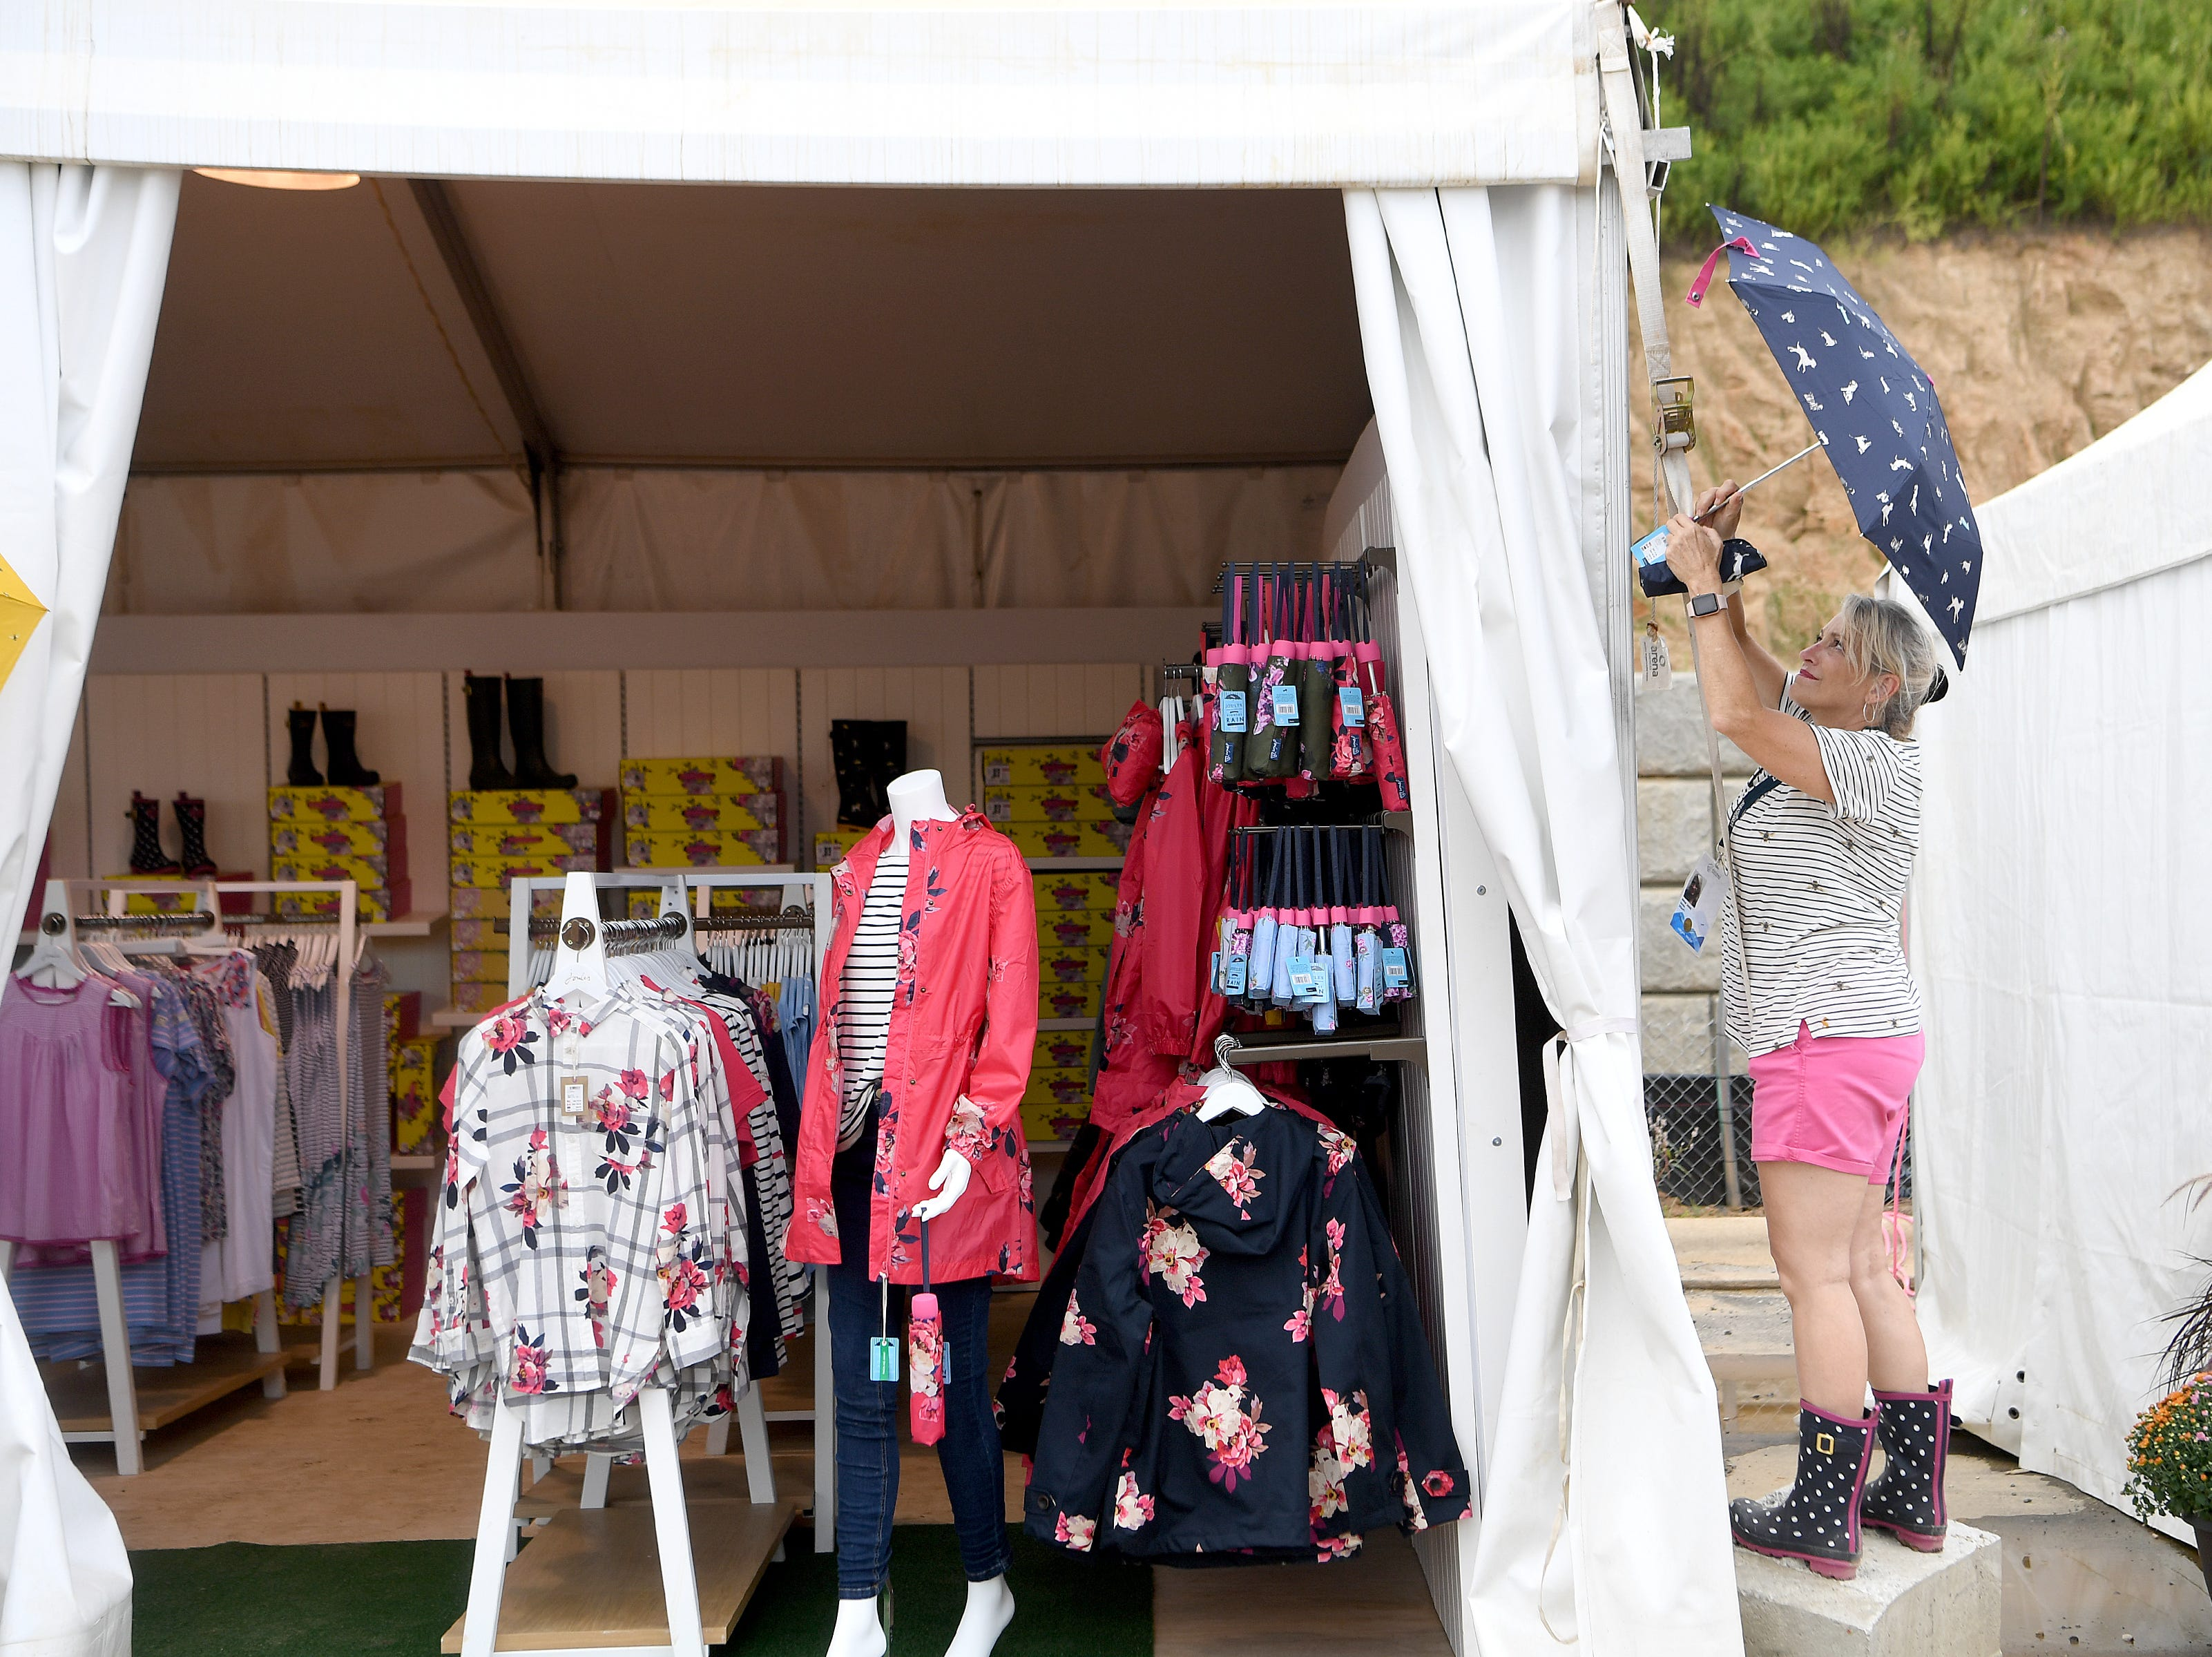 Renee Jones, of Charlotte, hangs an umbrella on the Joules tent, sponsored by Dillards, before the start of the opening ceremonies of the FEI World Equestrian Games at the Tryon International Equestrian Center on Sept. 11, 2018.